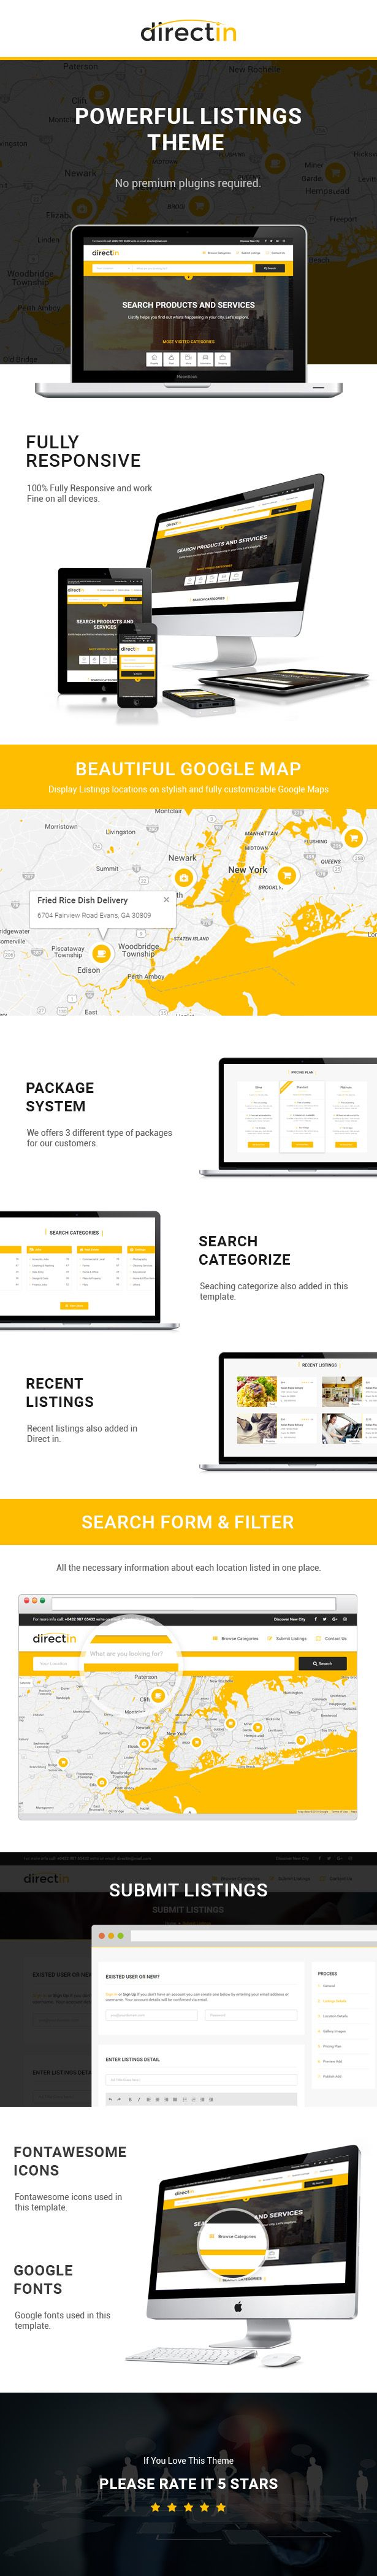 17 melhores ideias sobre job portal no layouts de directin classified ads listing template for directory realty property and yellow pages